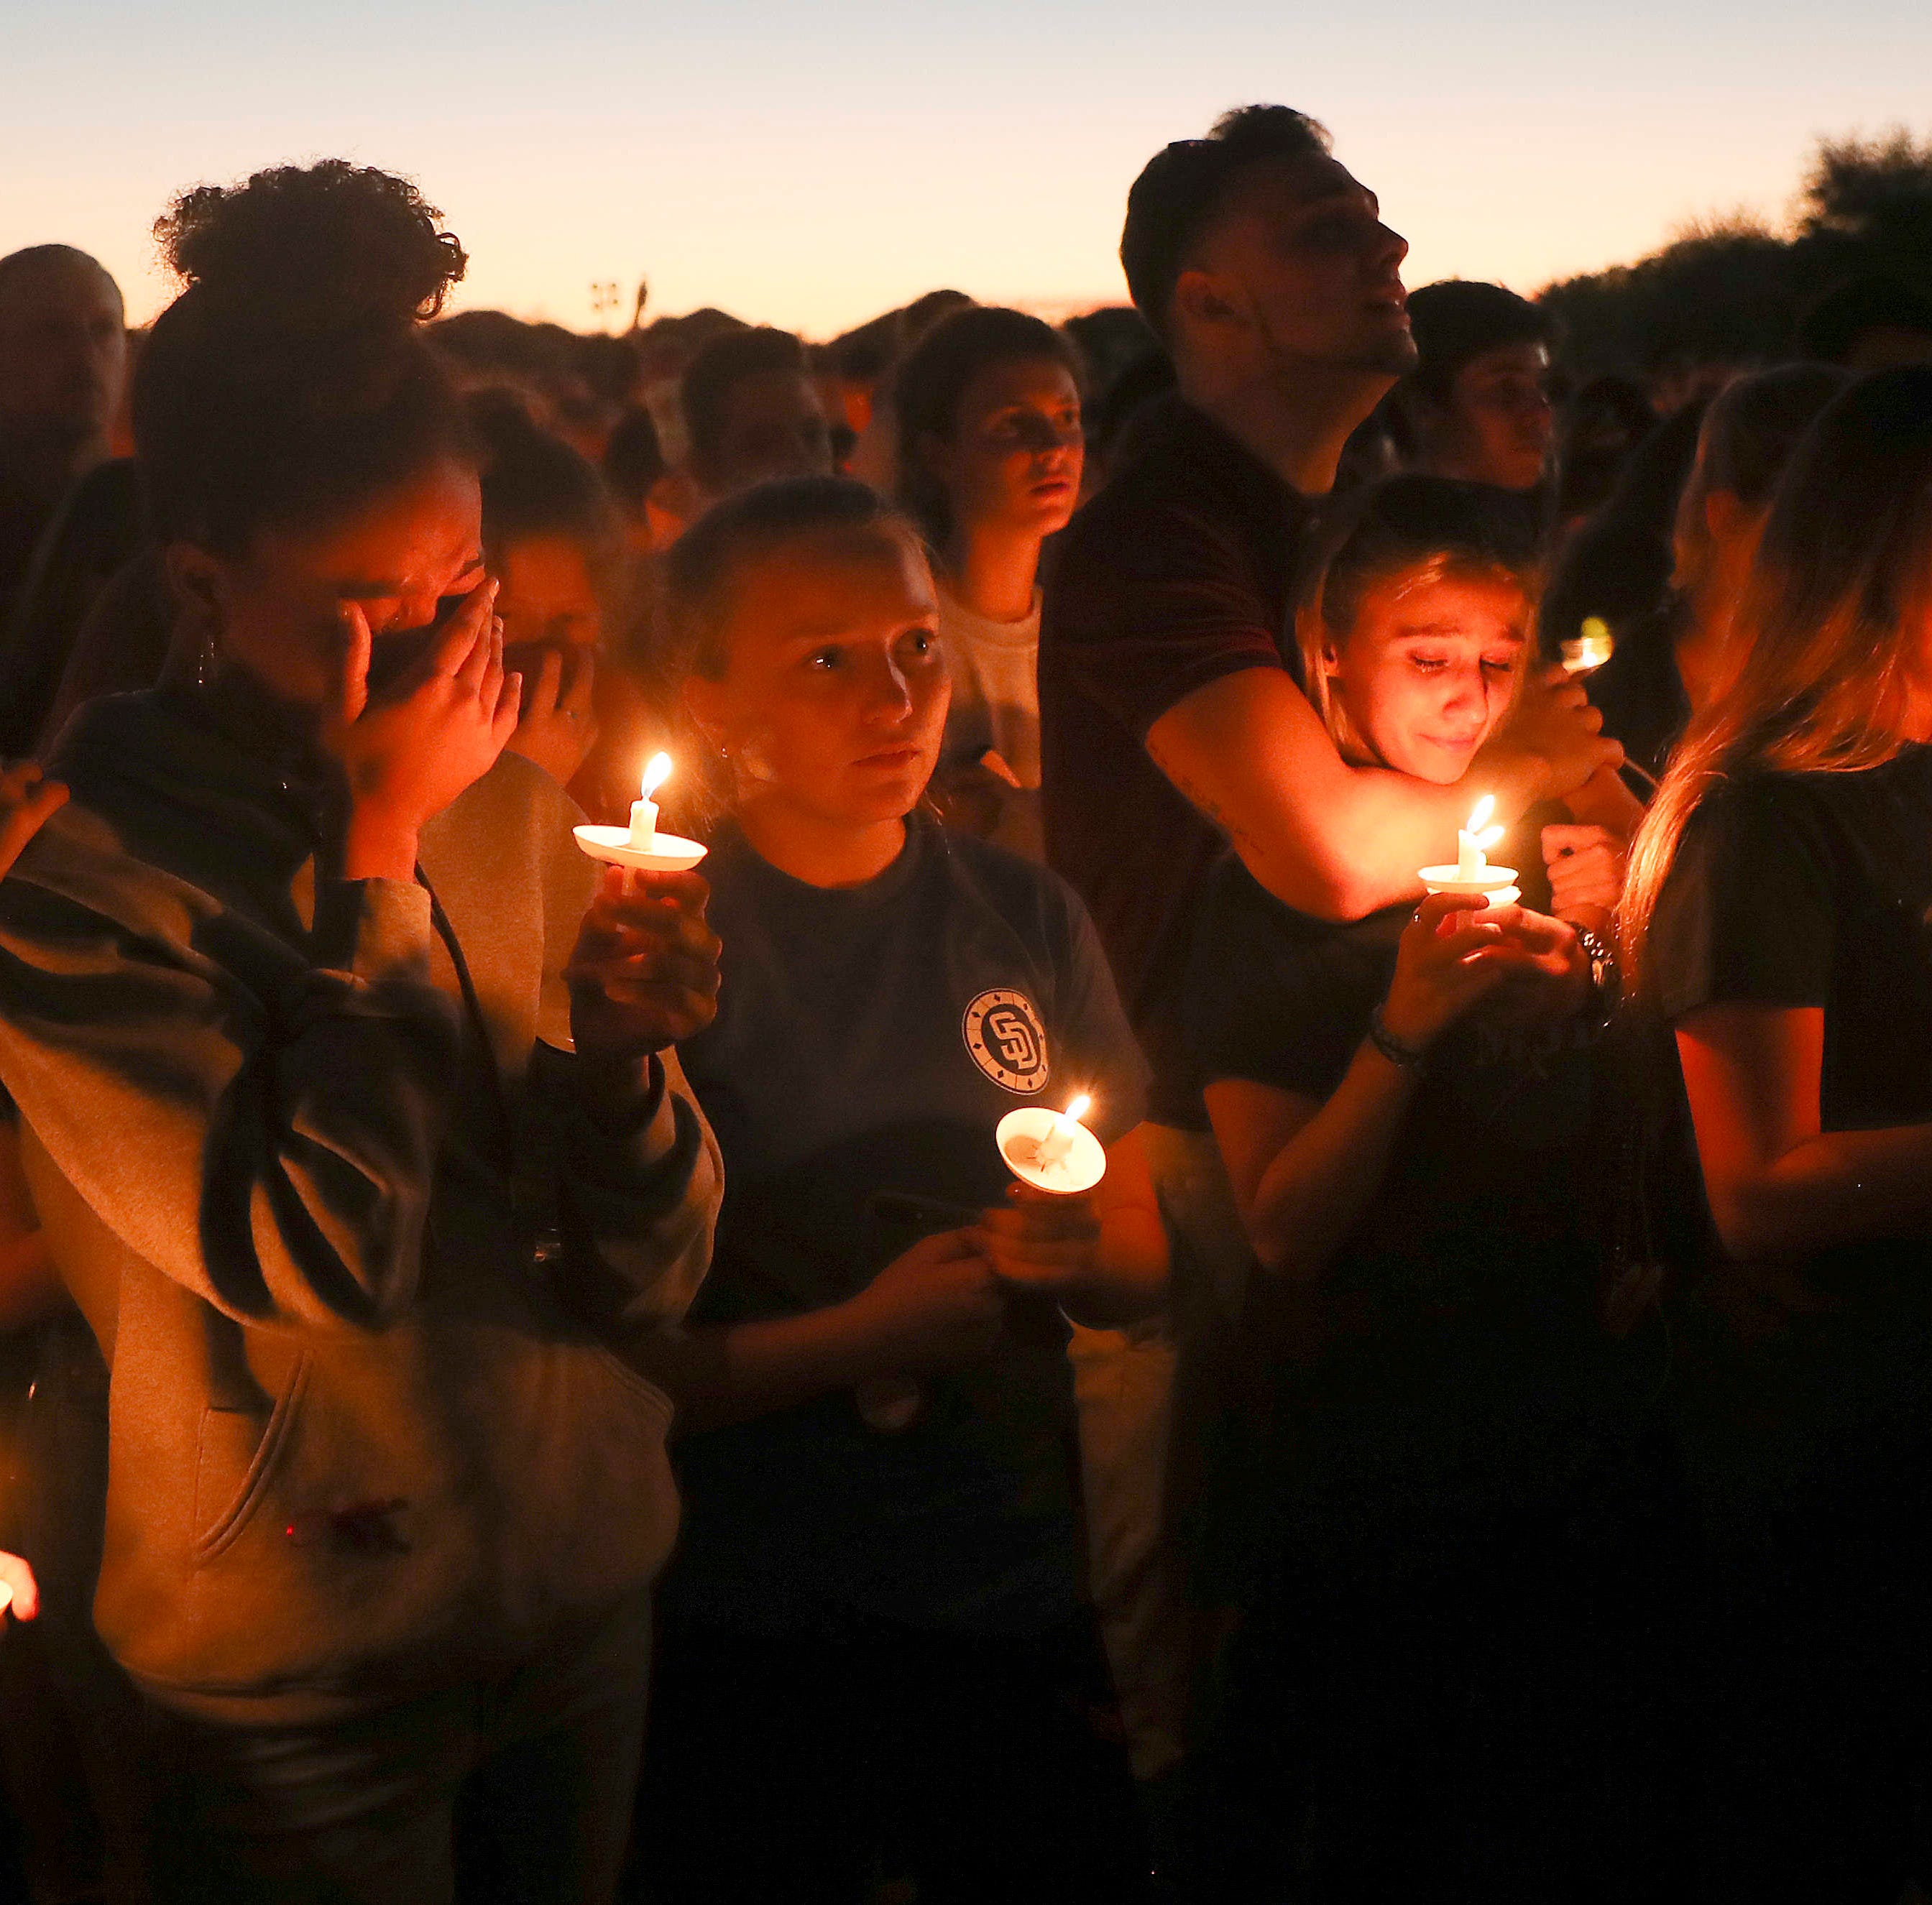 Moms are working to prevent the next Parkland. Here's their action plan.